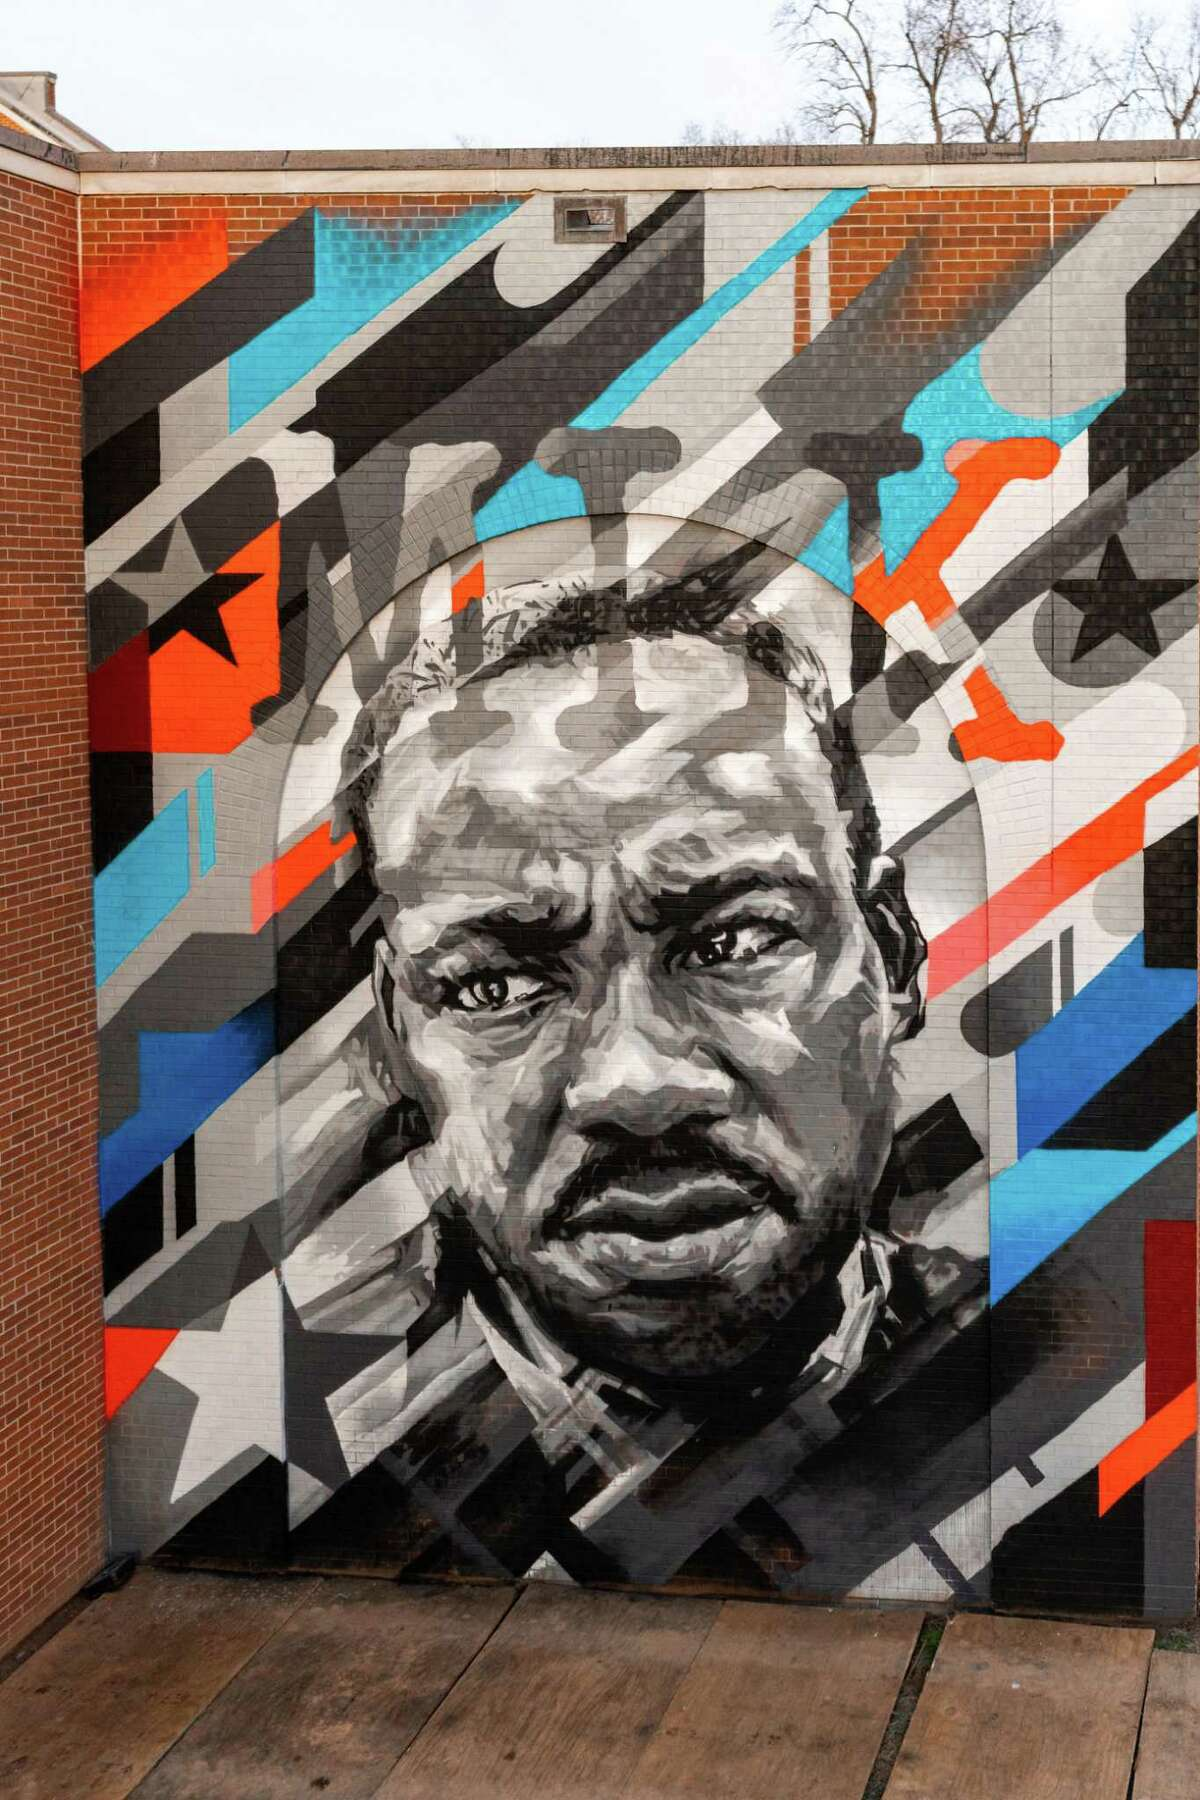 An online fundraiser for the Torrington mural project has been started, with a goal of $7,500. For every dollar raised, Sustainable CT will match every dollar raised to install a Martin Luther King Jr. mural somewhere in Torrington. Here, an MLK painting by artist Ben Keller, who is the lead artist for the Torrington project.